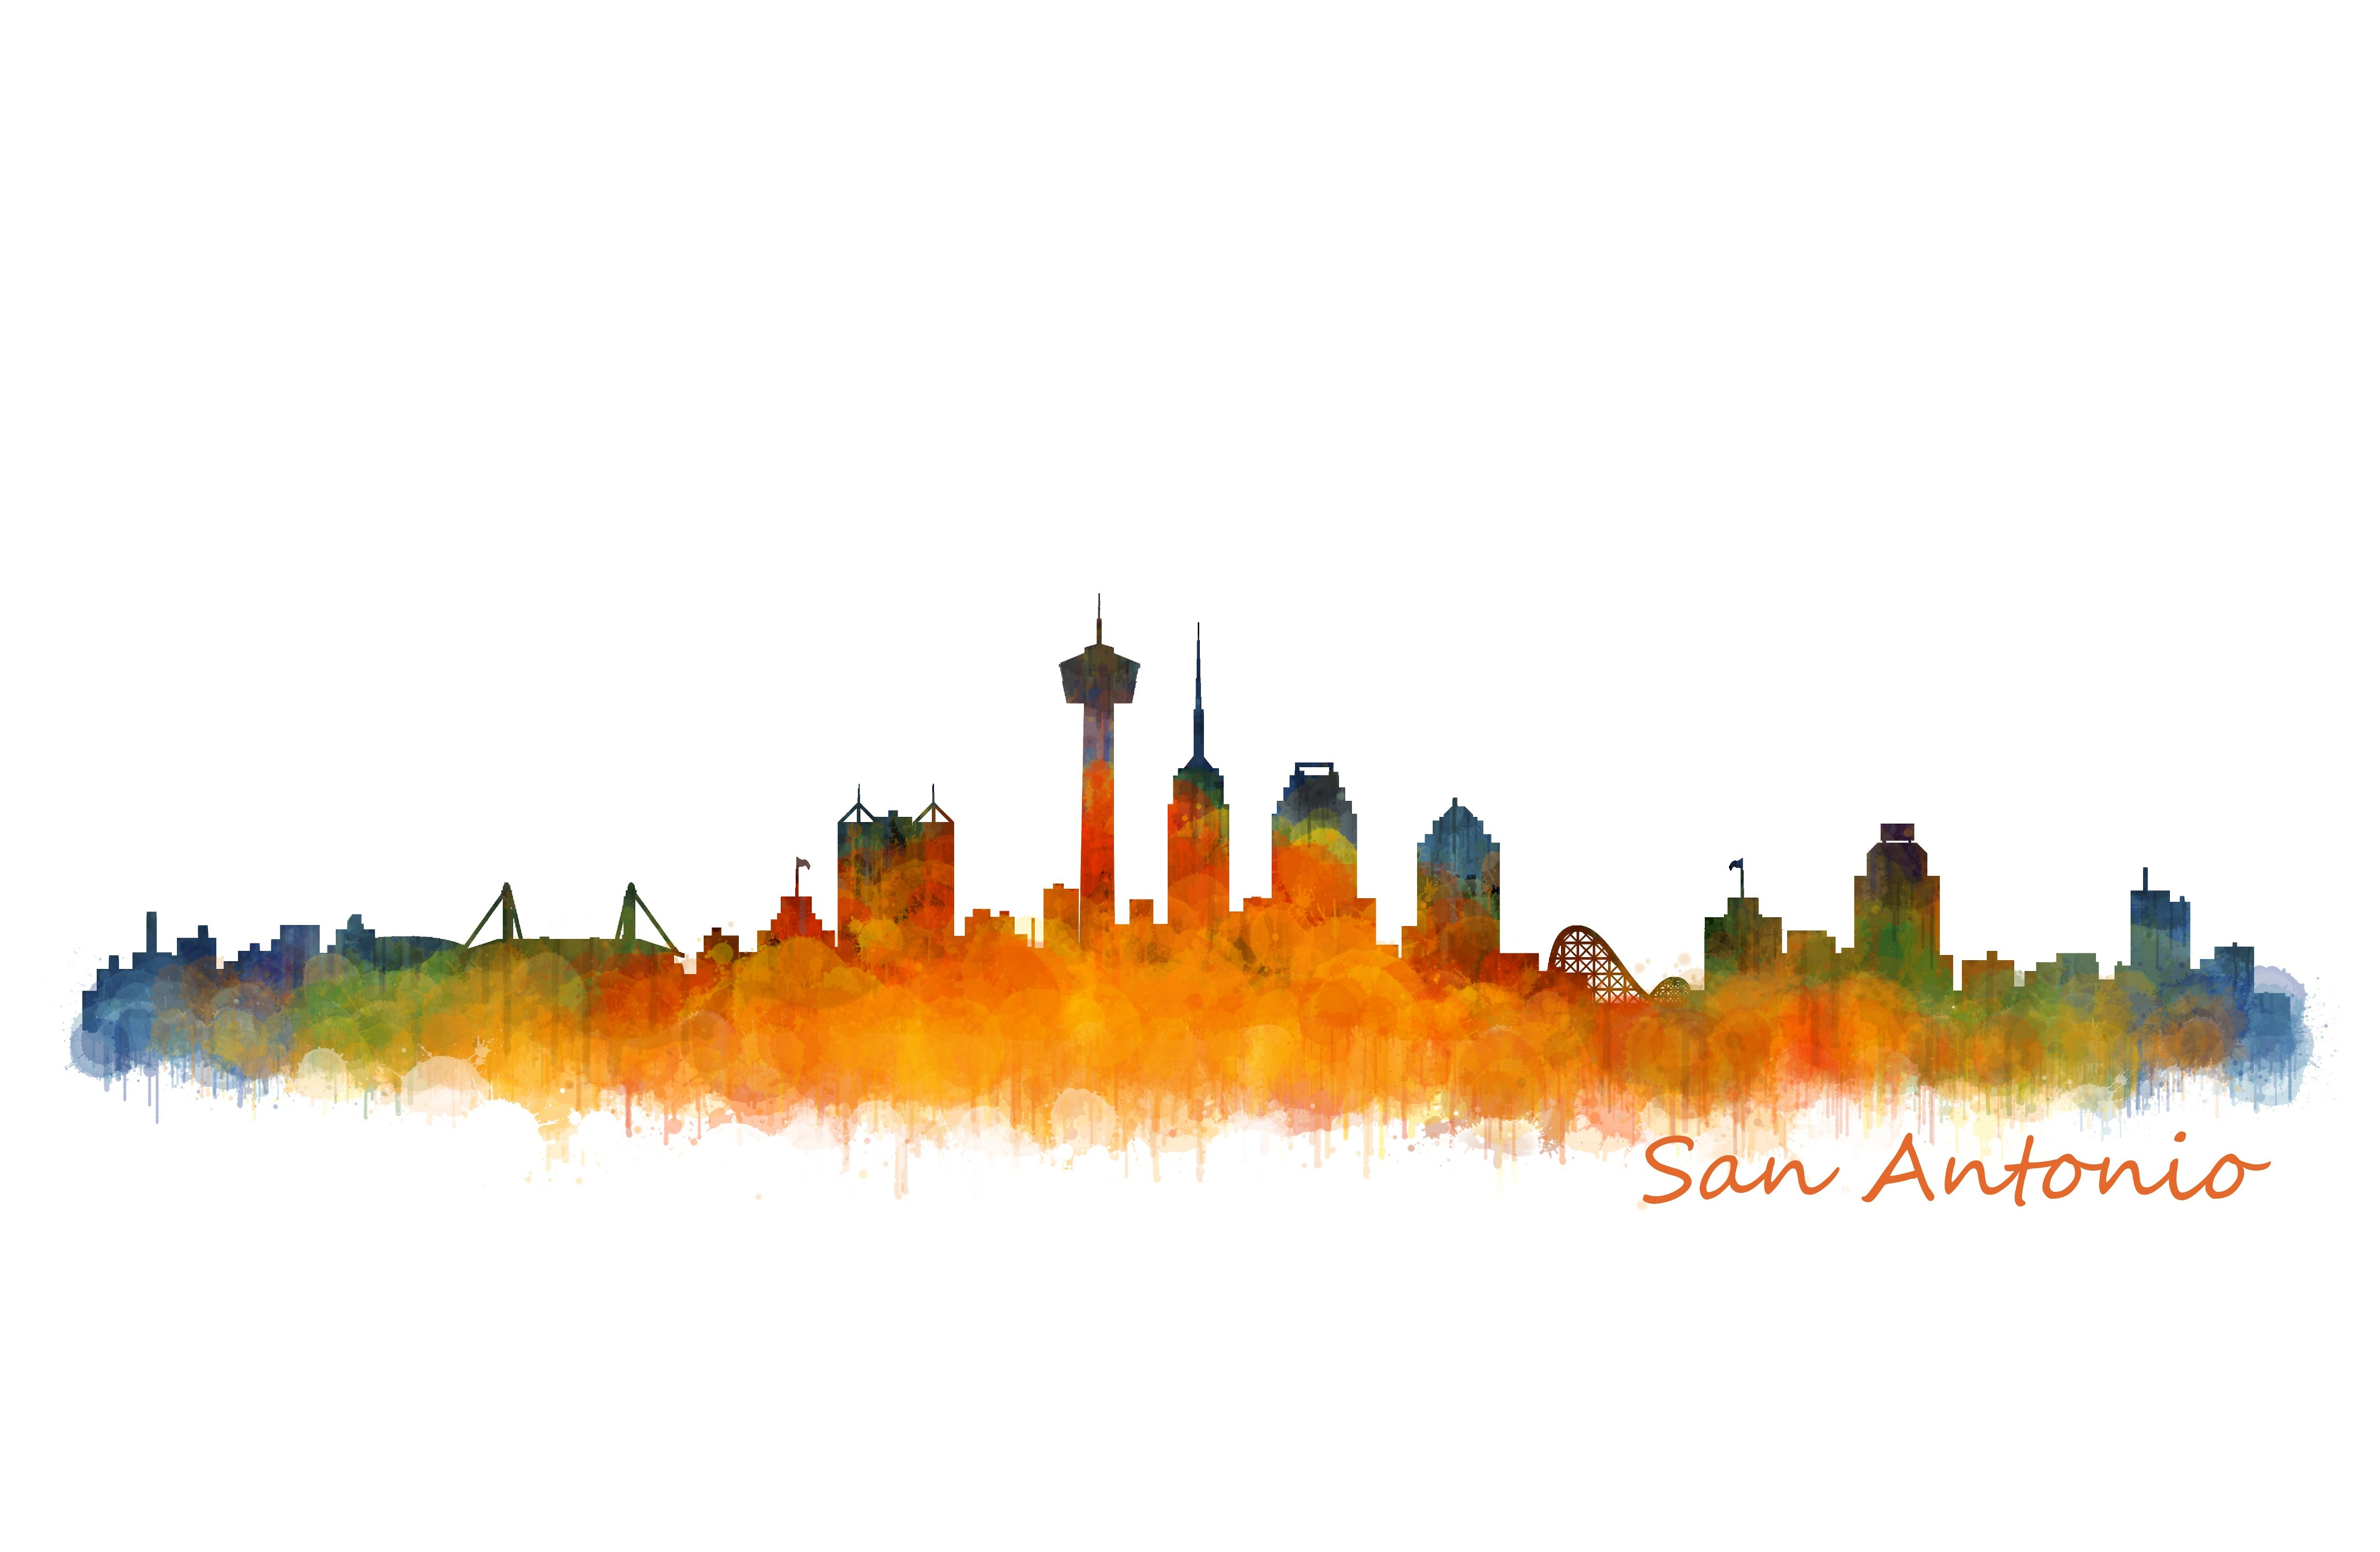 San Antonio Texas Cityscape Skyline Illustrations